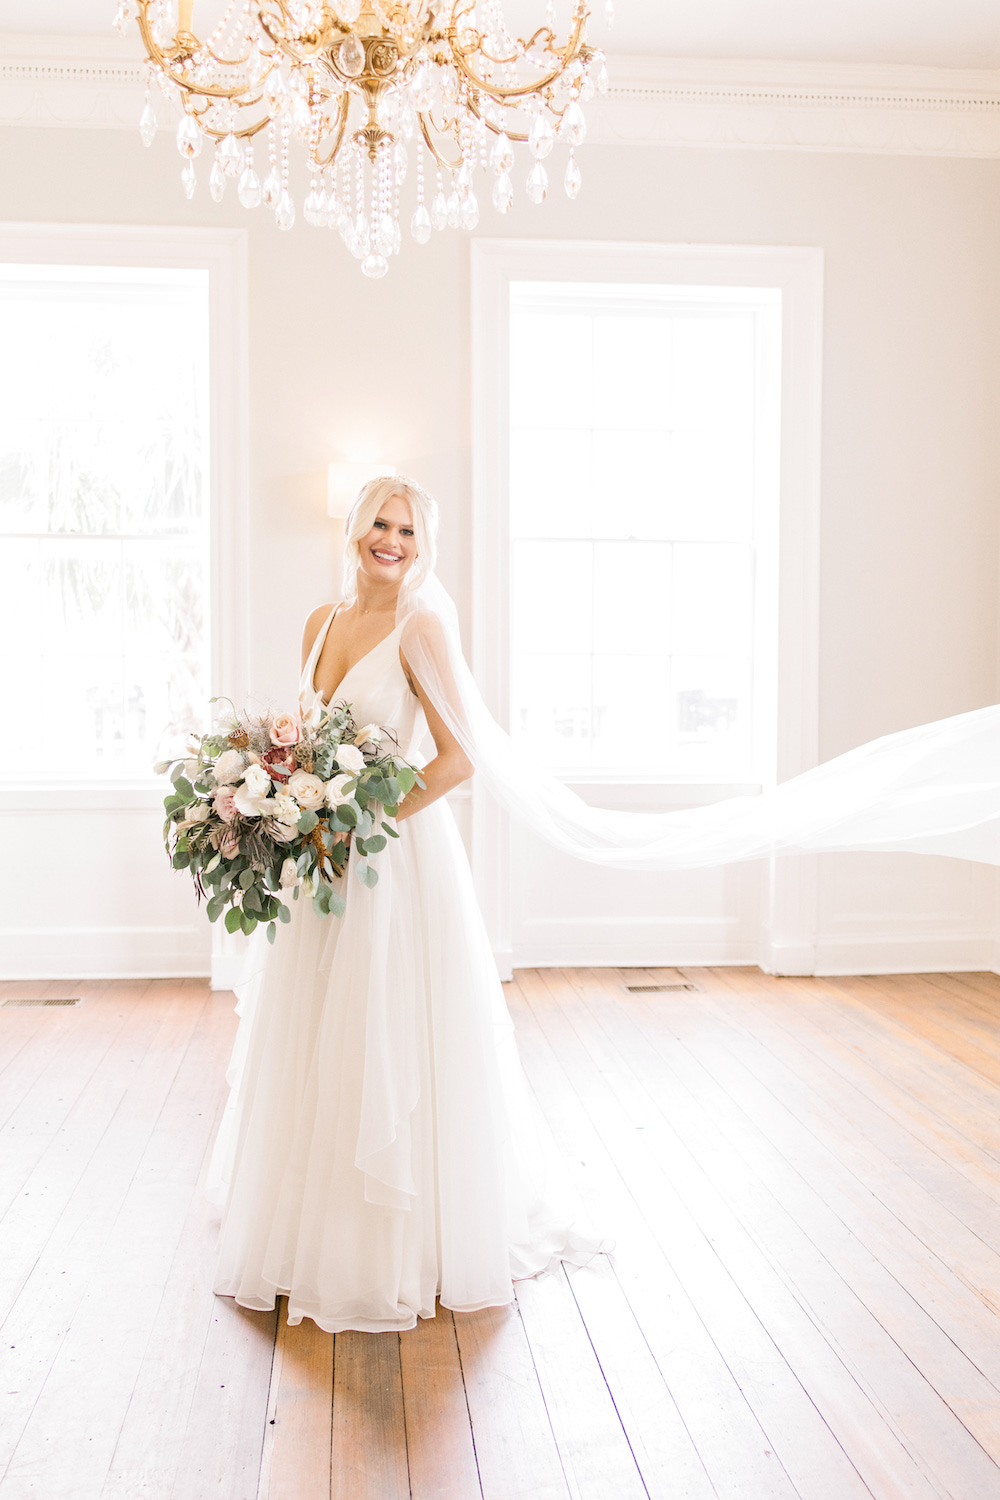 Smiling Bride Holding Overflowing Bouquet